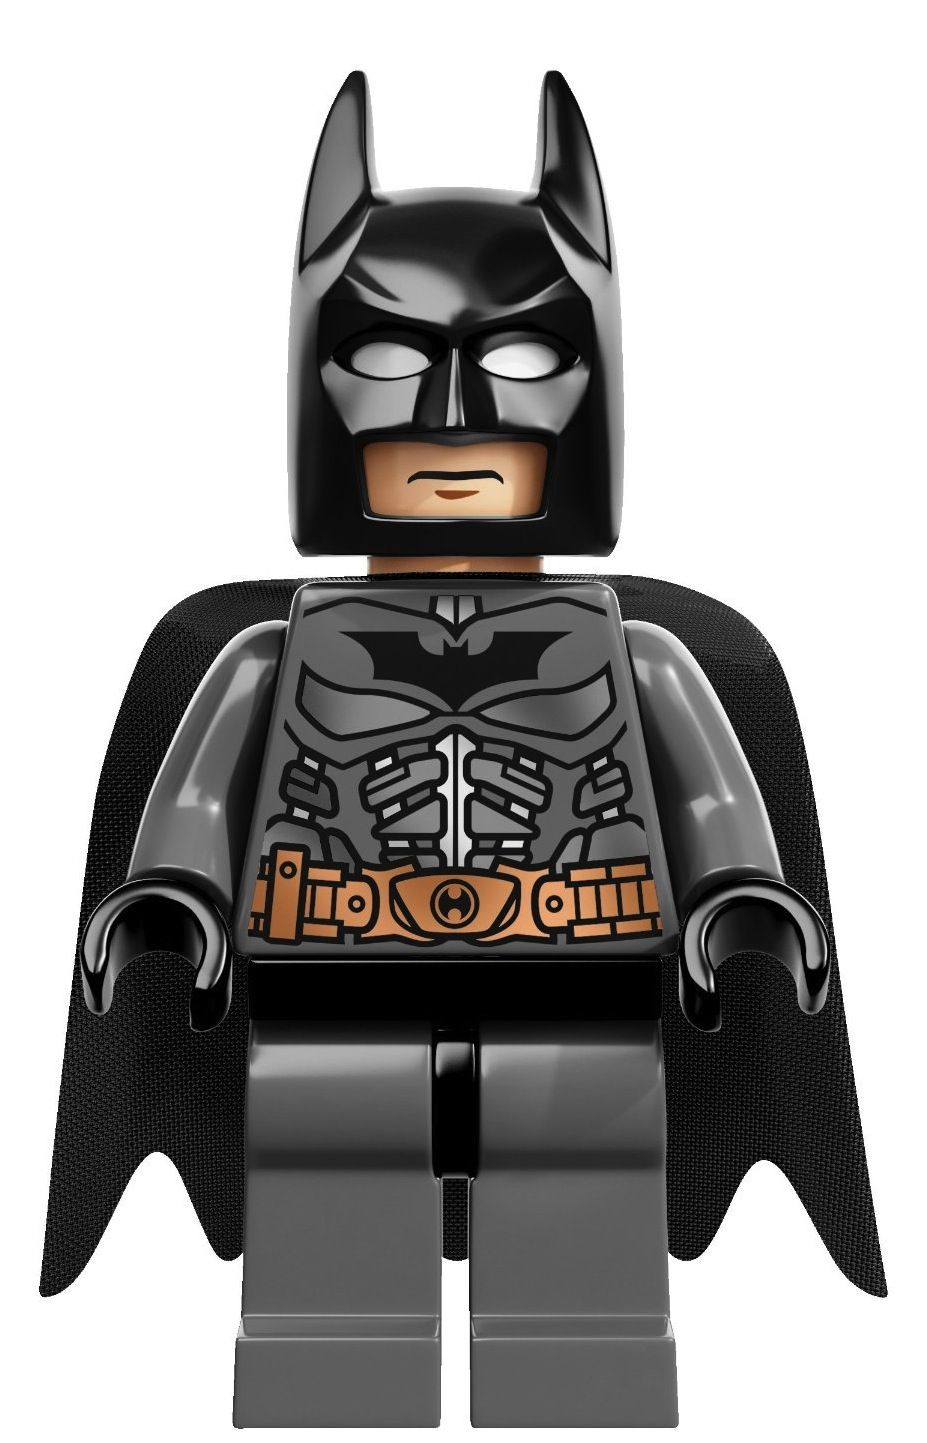 Lego clipart justice league. Super heroes batman chase